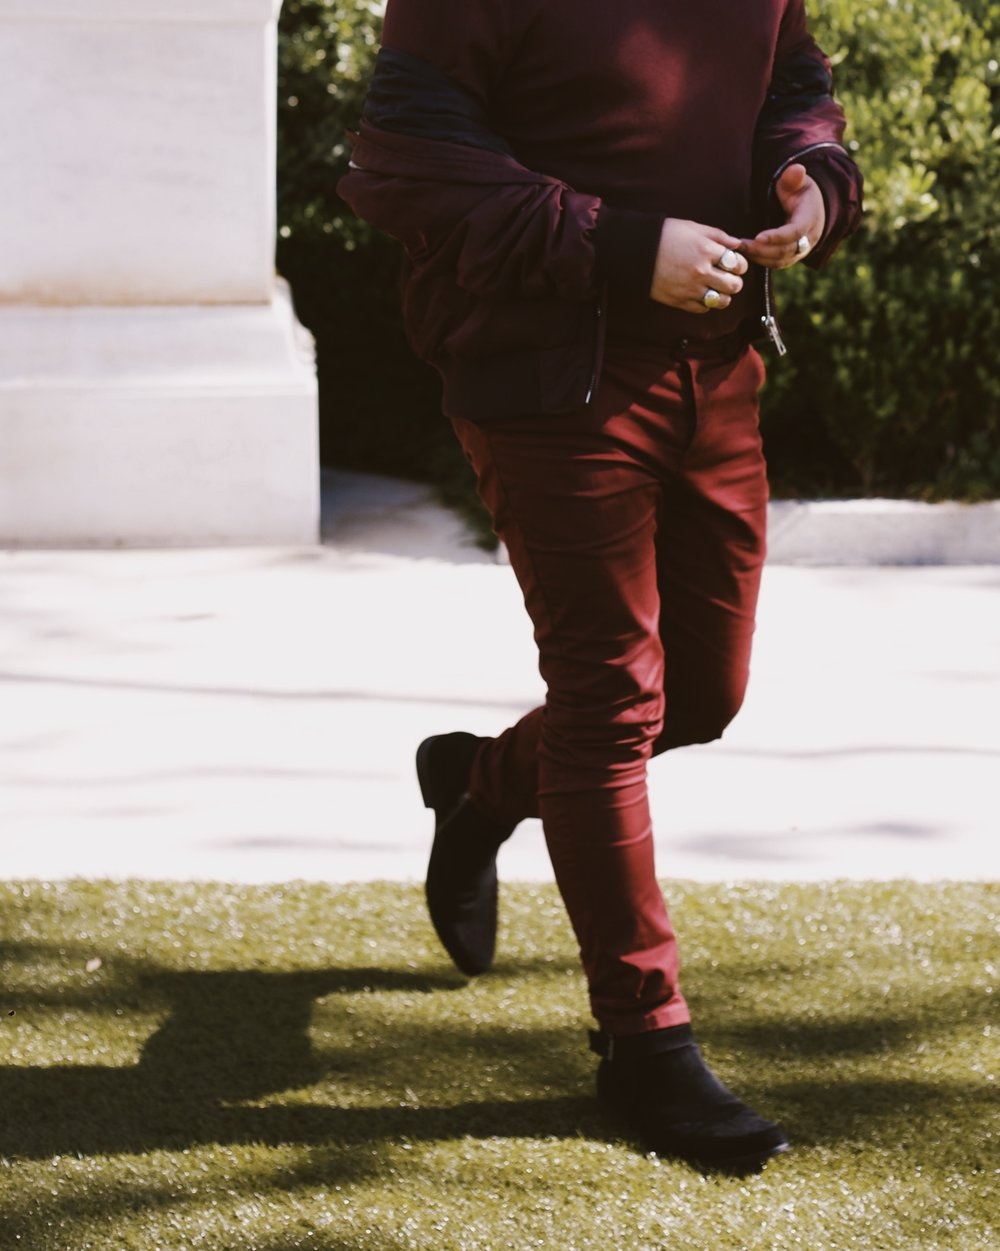 Burgundy - I've been described as a fine wine once upon a time. I took it upon myself to dress the role. It's not head-to-toe Yeezy, but I'll welcome the comparison.